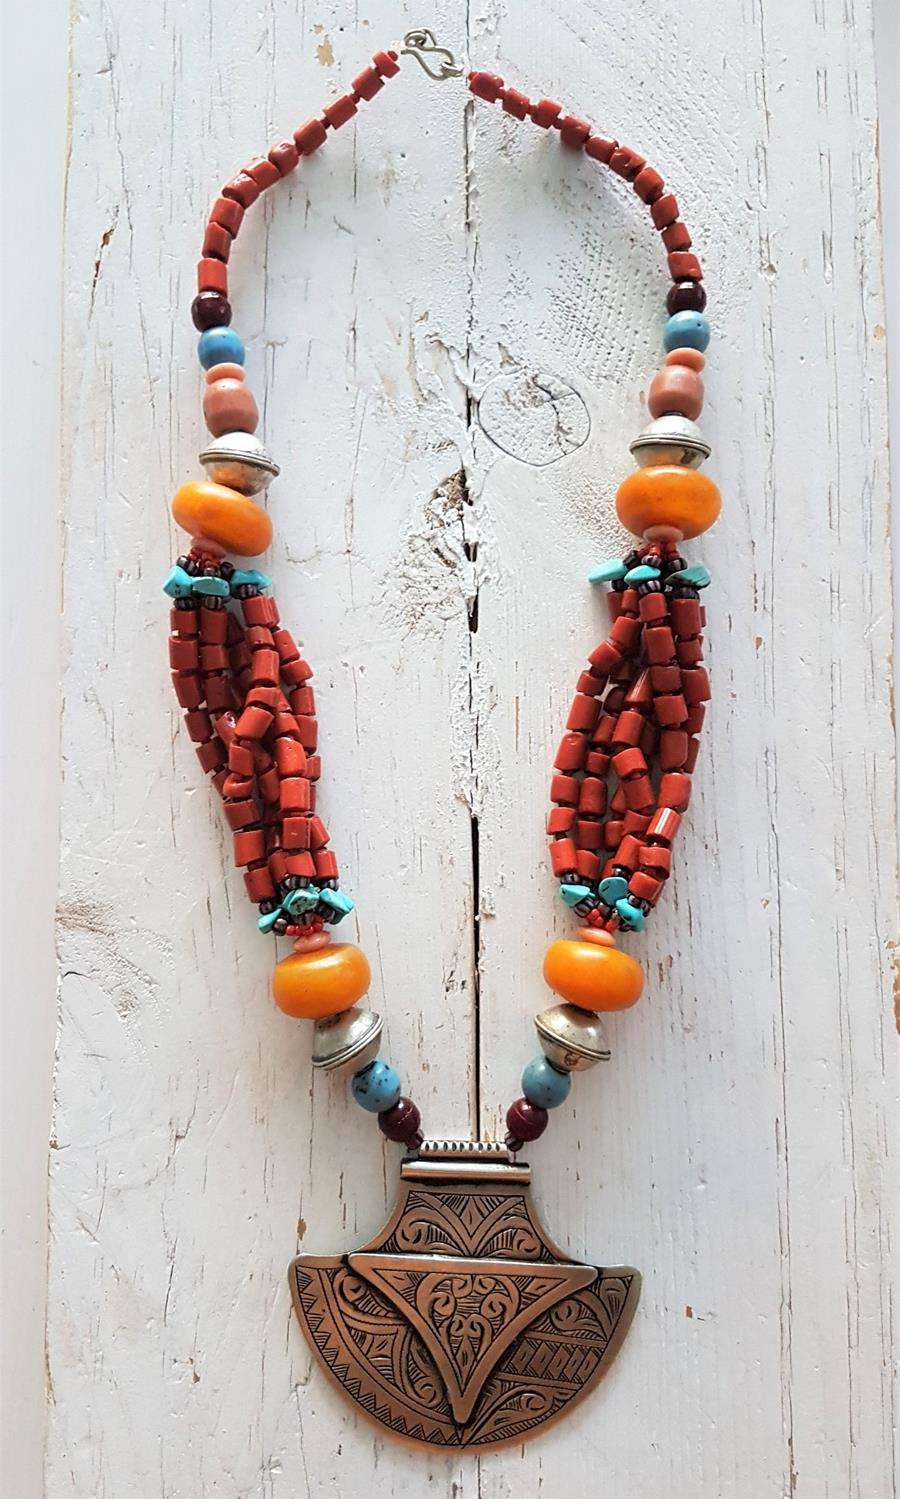 Collar Fez | 490 | Bohemian Barcelona, freespirit, lifestyle.